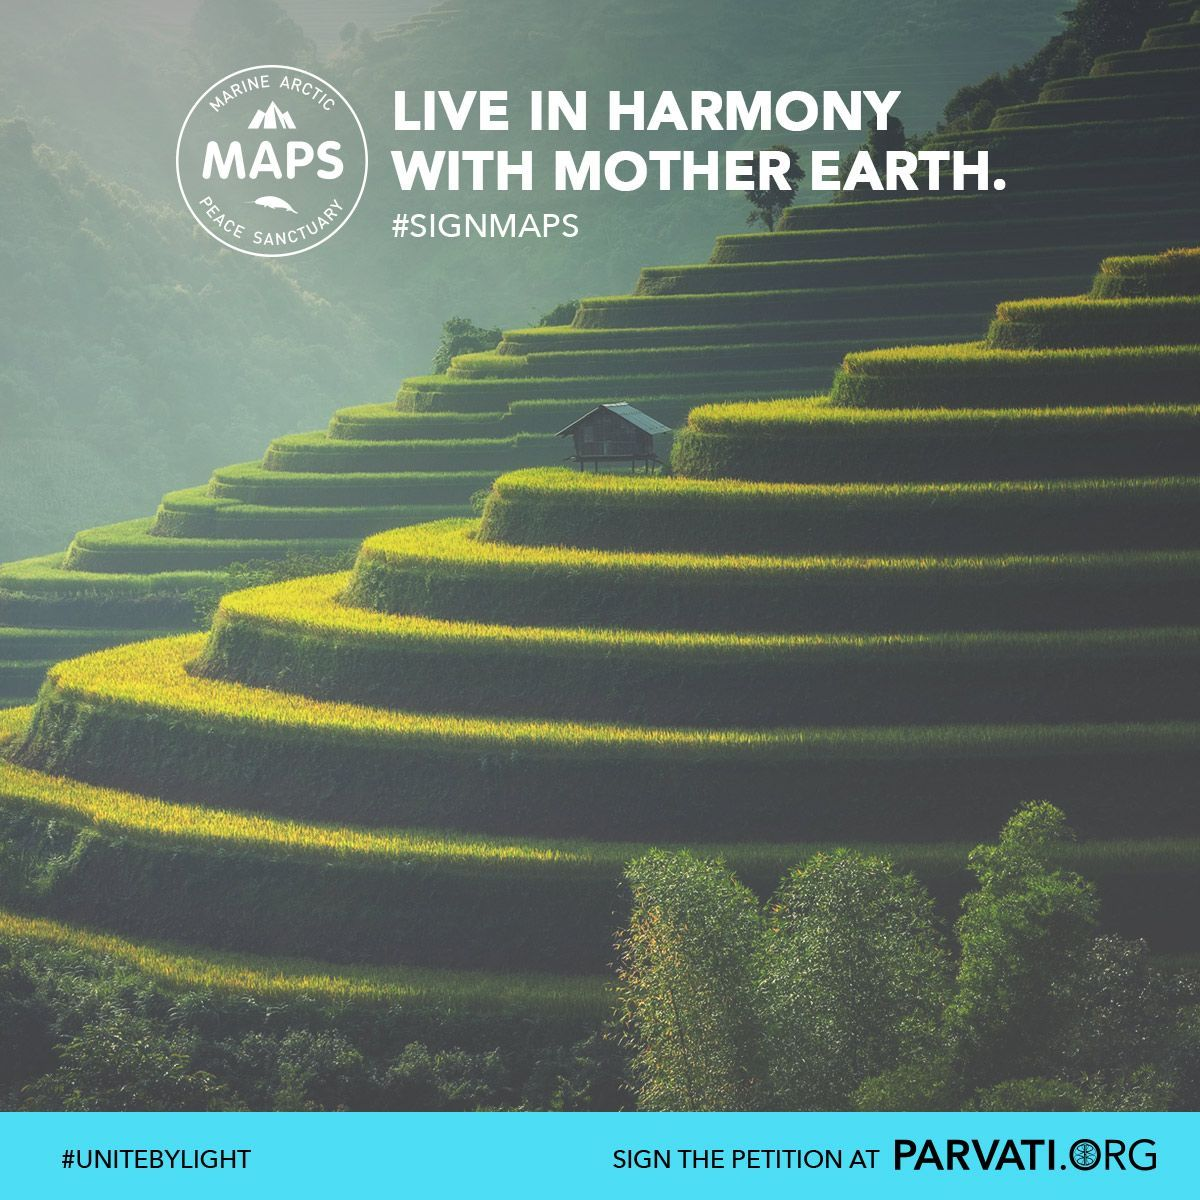 When we attend to Nature with care, love and respect, we all co-exist harmoniously. We have reached a tipping point where our earth, and our wellbeing, is in a critical state. Sign and share the MAPS: Marine Arctic Peace Sanctuary petition at Parvati.org to protect our planet.